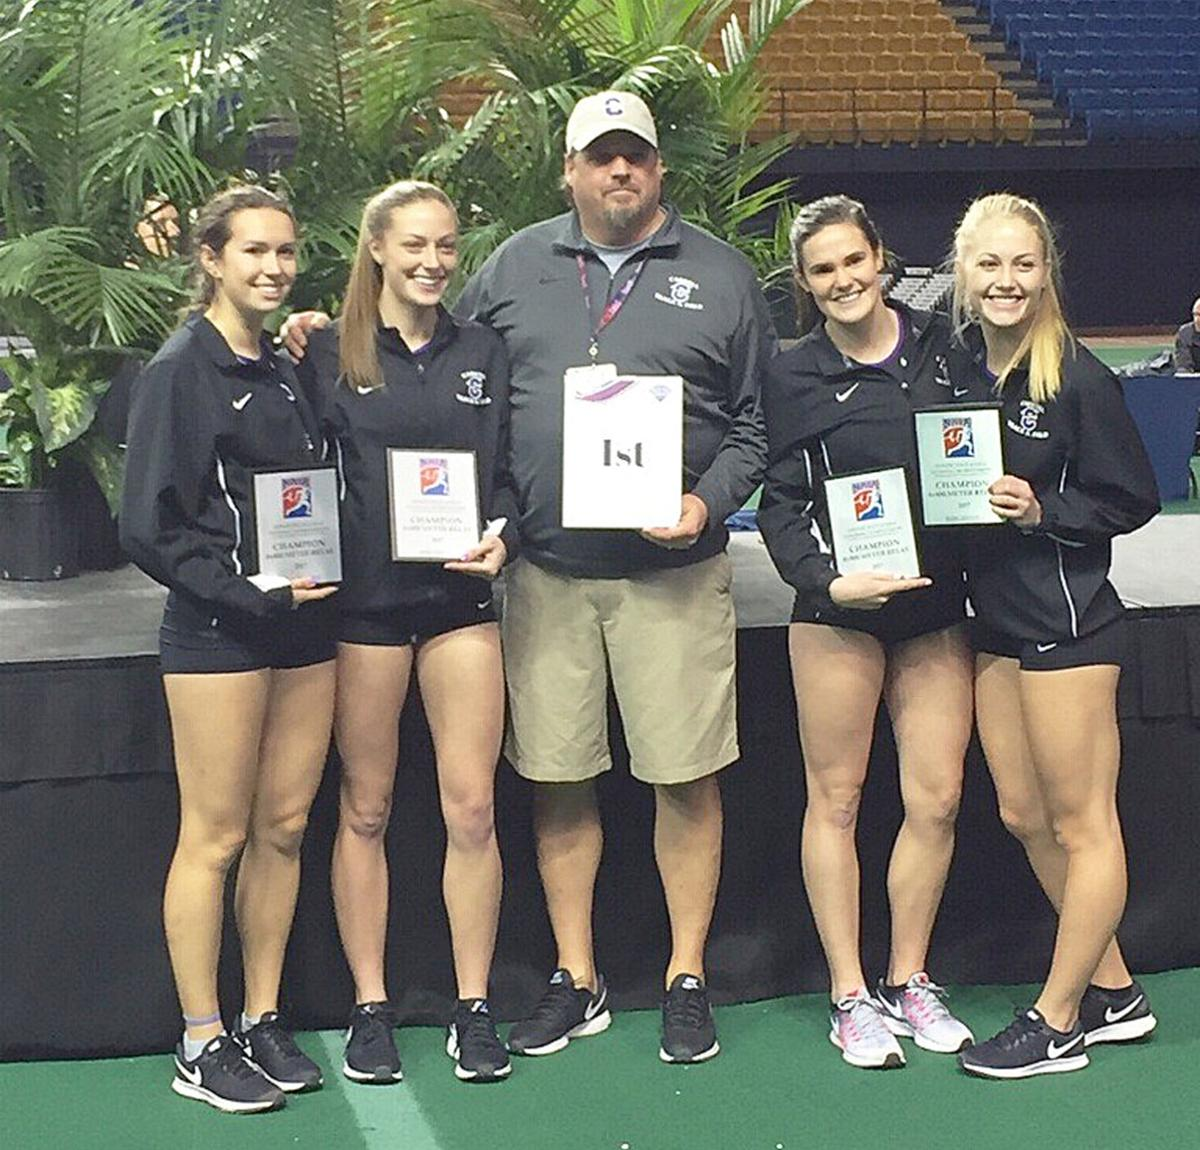 Darby Grad national champion team and coach